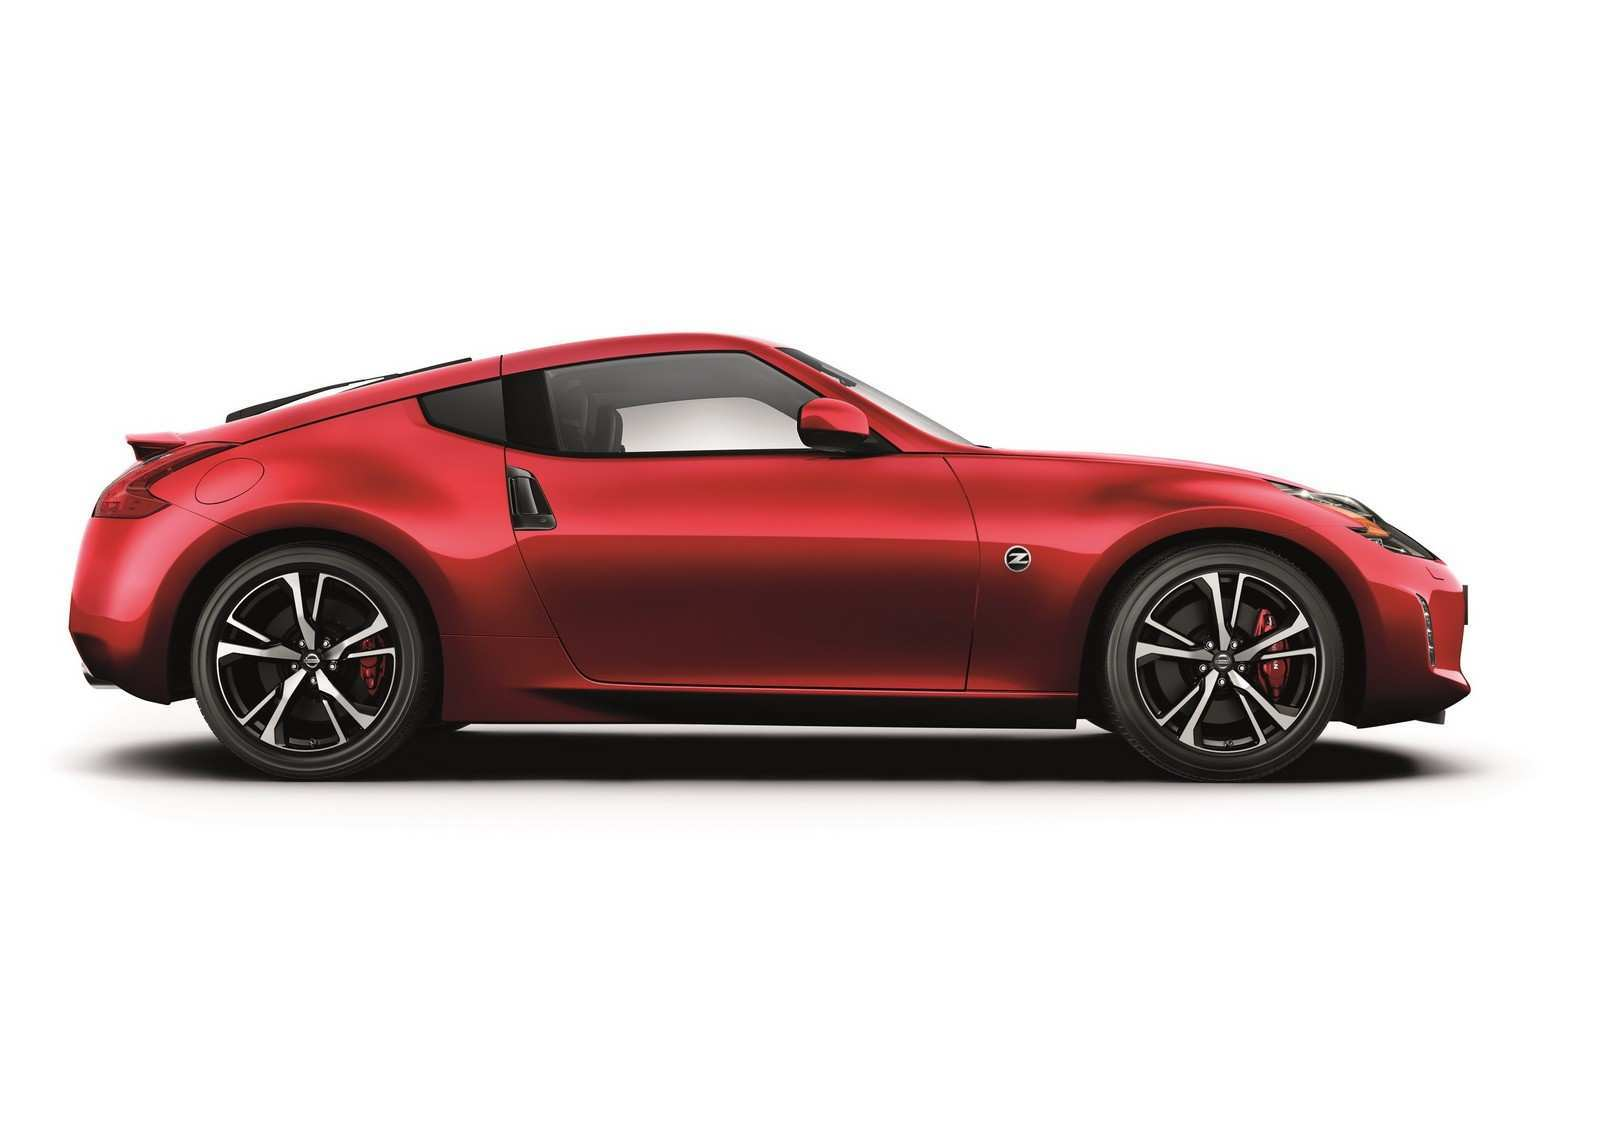 79 All New 2019 Nissan Z News Images with 2019 Nissan Z News